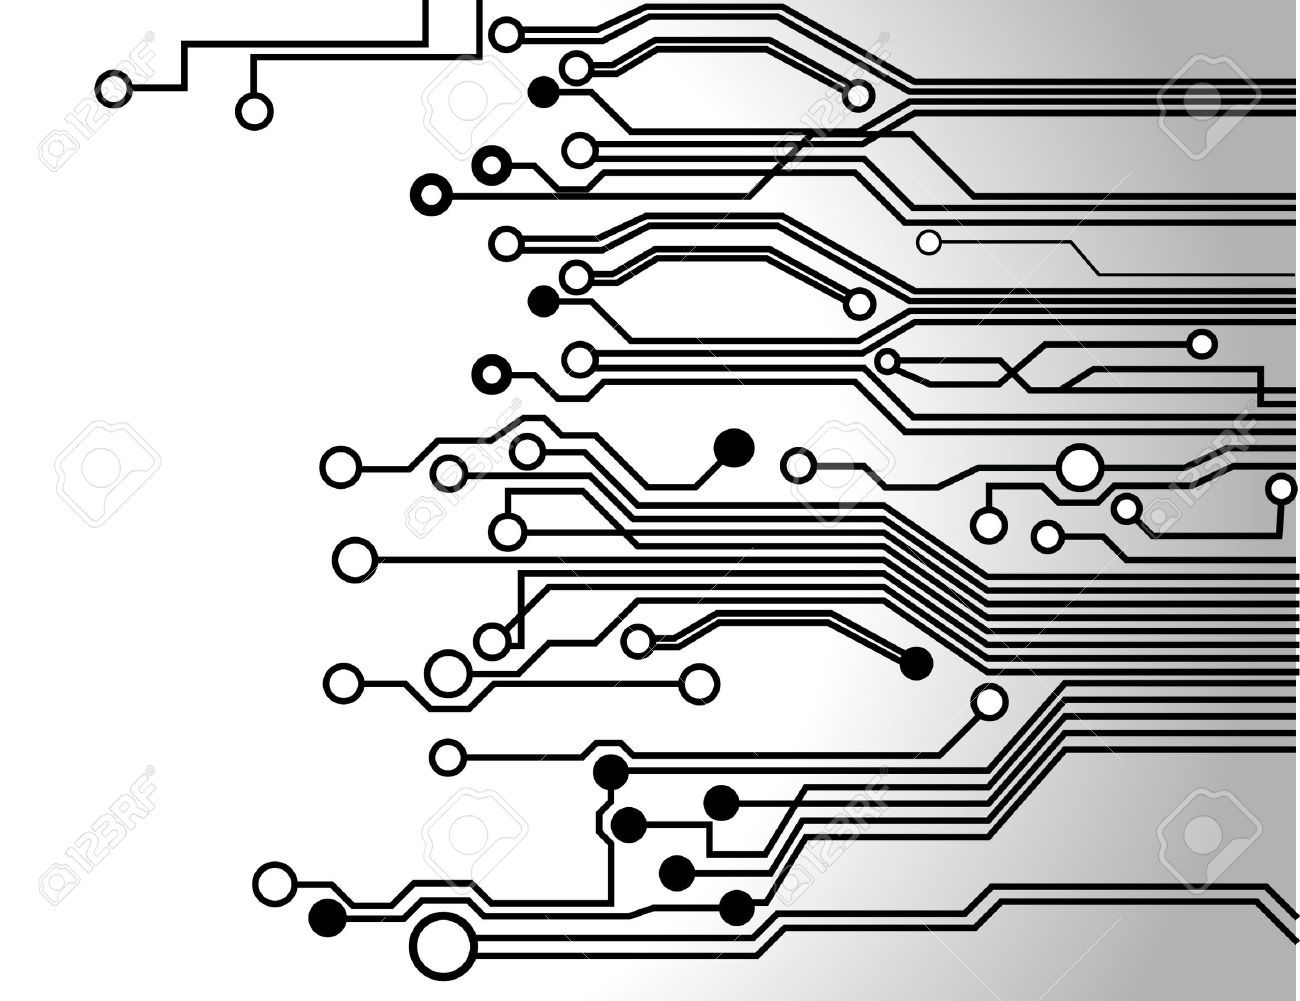 circuit board background texture - 13652673